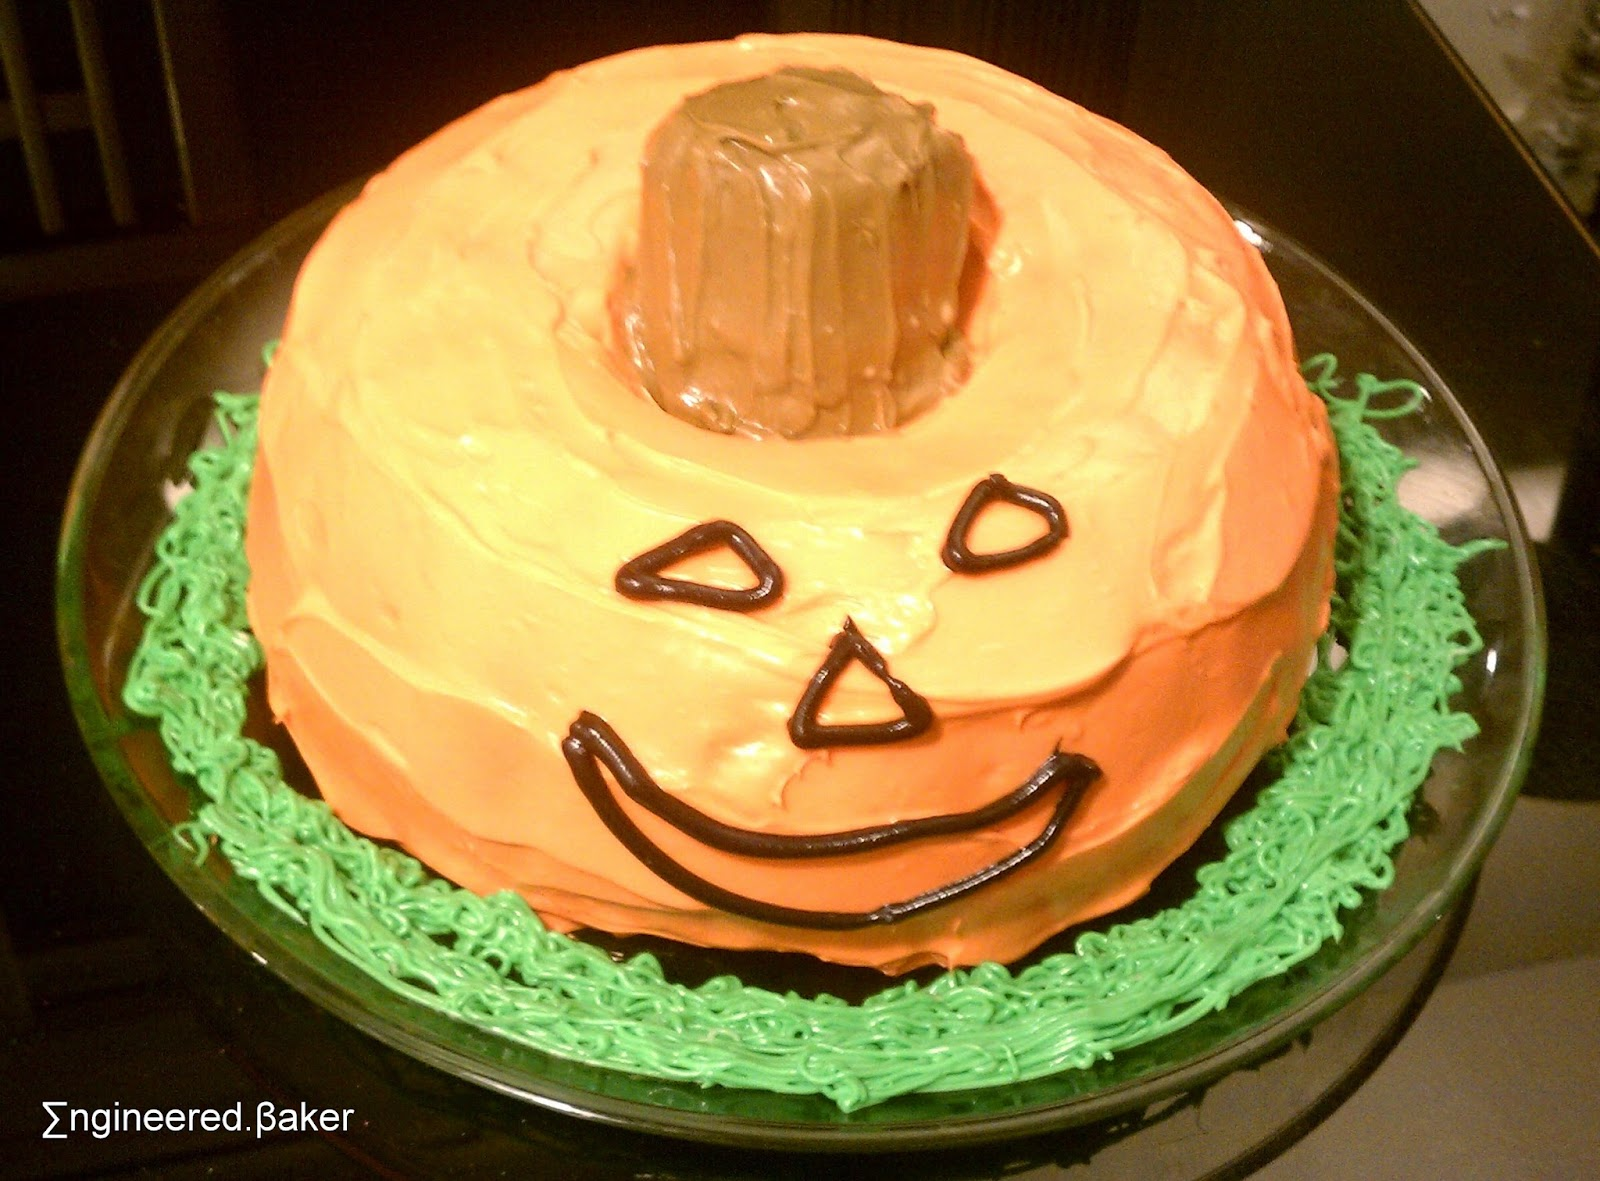 Halloween Bundt Cake Decorations The Engineered Baker Decorating Idea The Jack O Lantern Bundt Cake